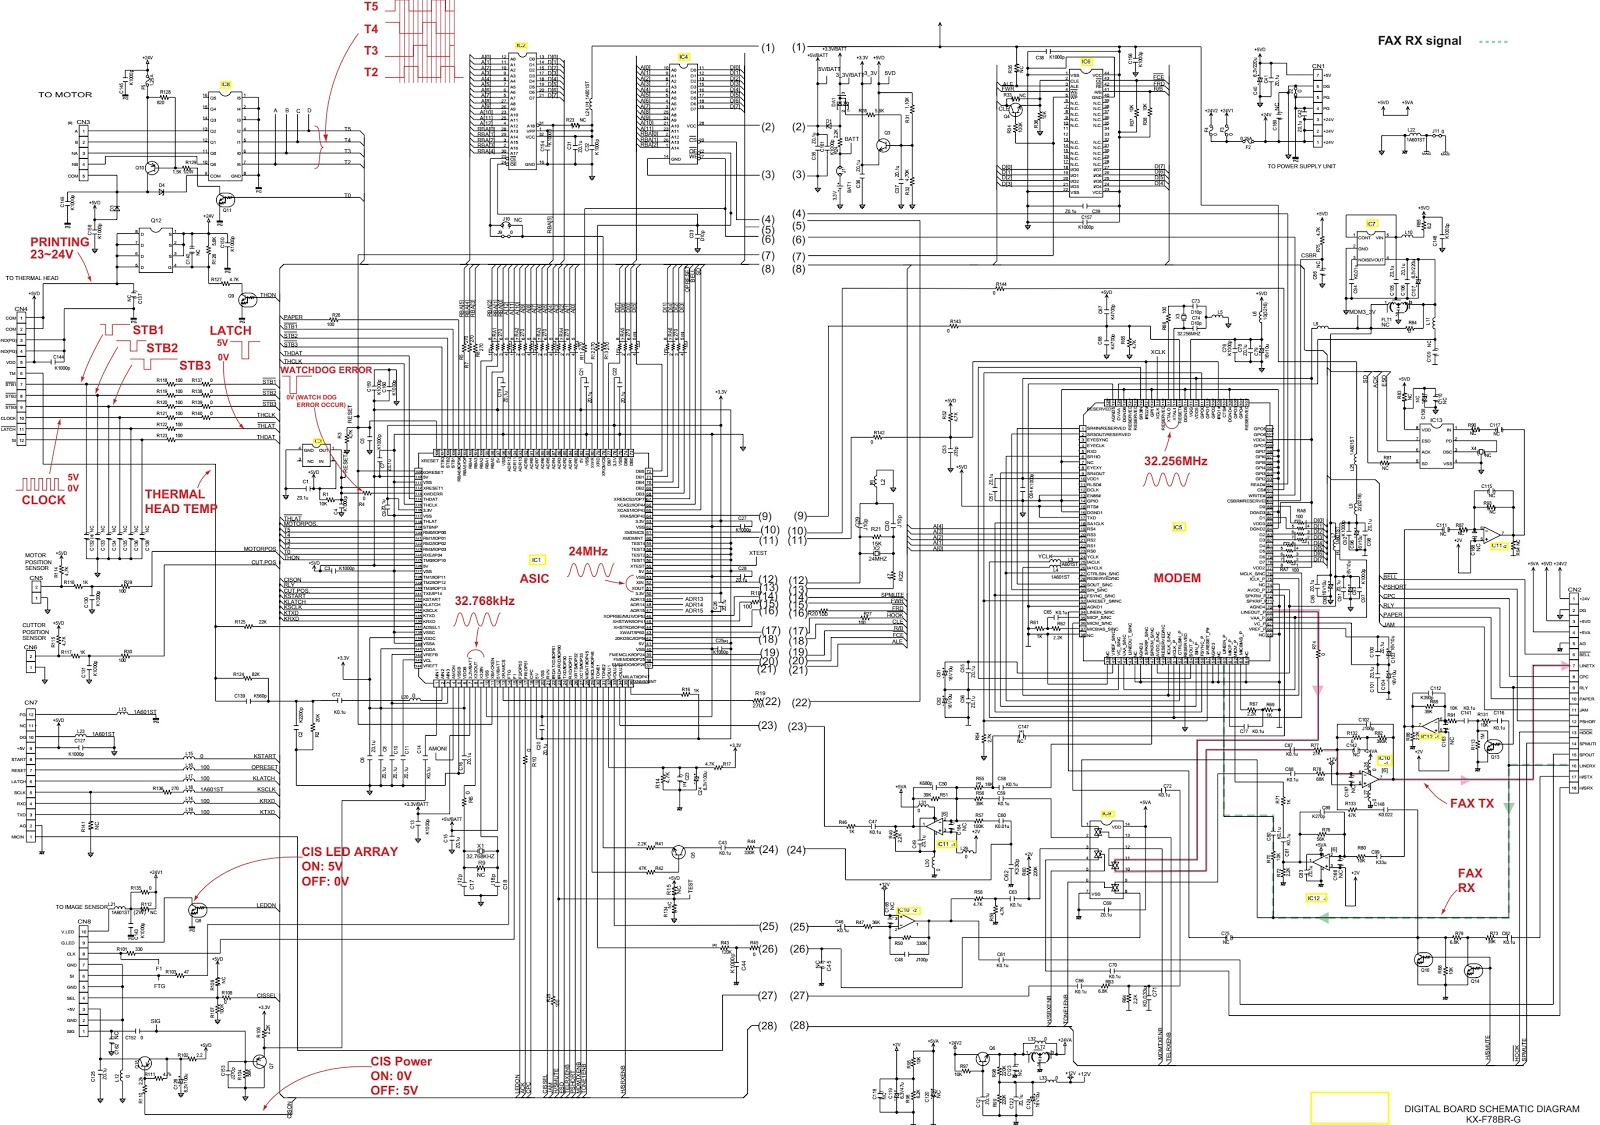 Panasonic KXFT78BRG POWER SUPPLY BOARD SCHEMATIC DIAGRAM